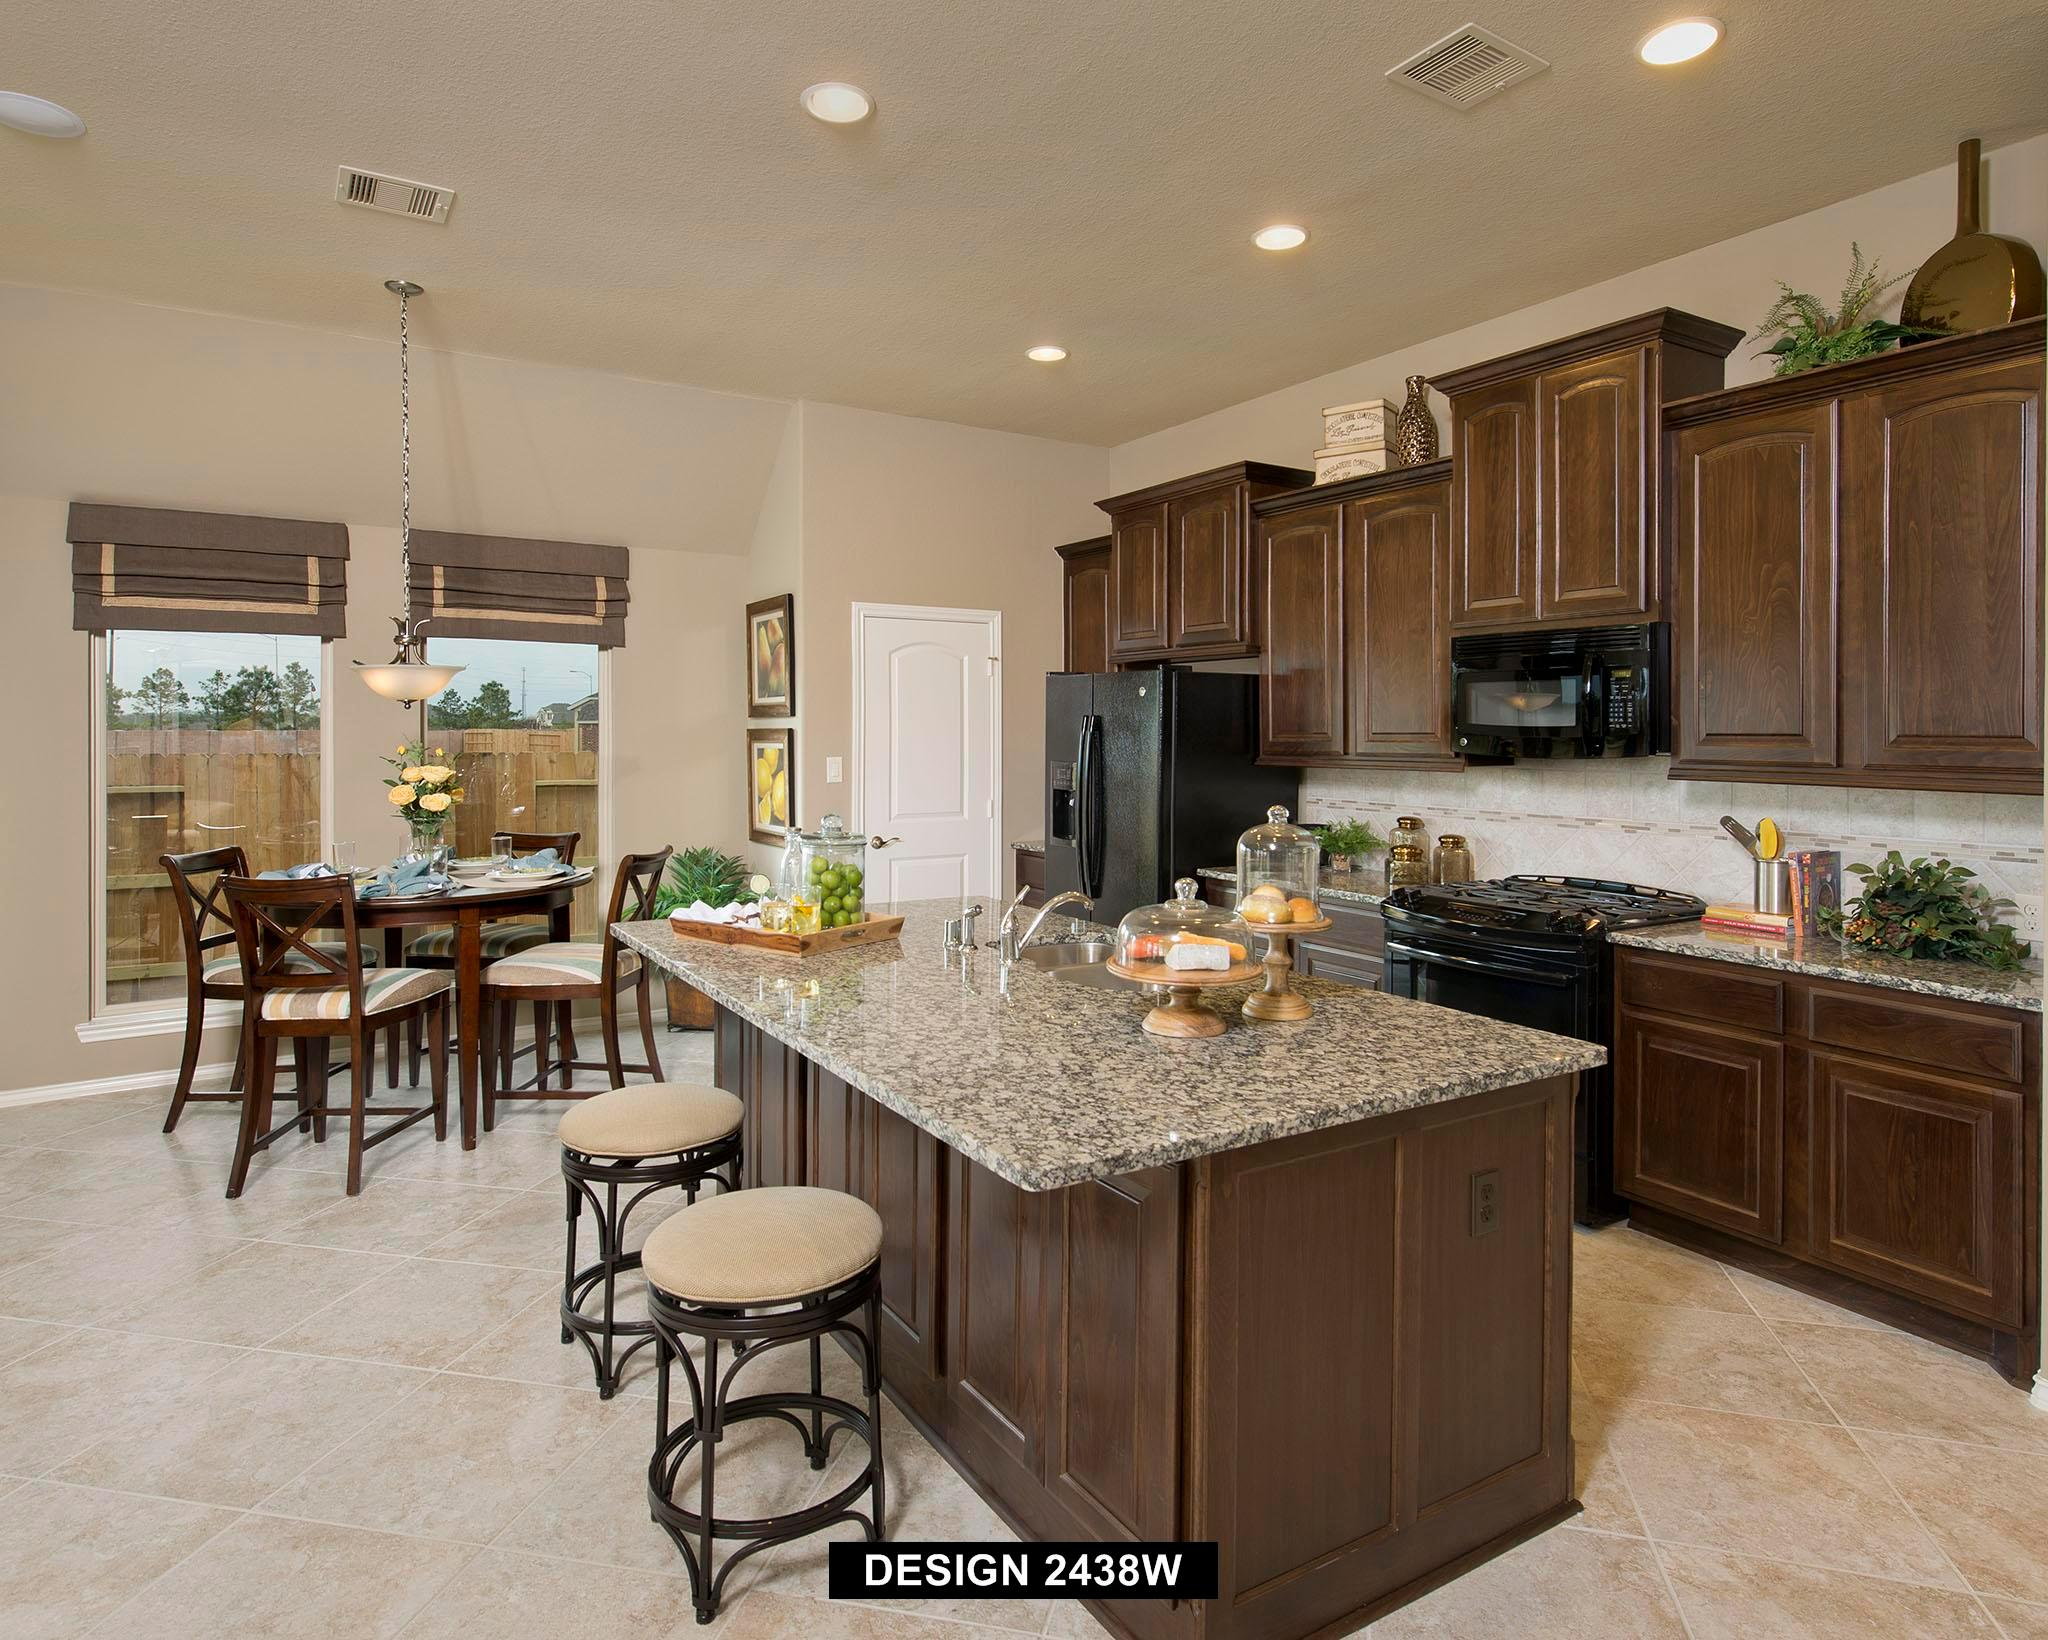 Kitchen featured in the 2438W By Perry Homes in Houston, TX